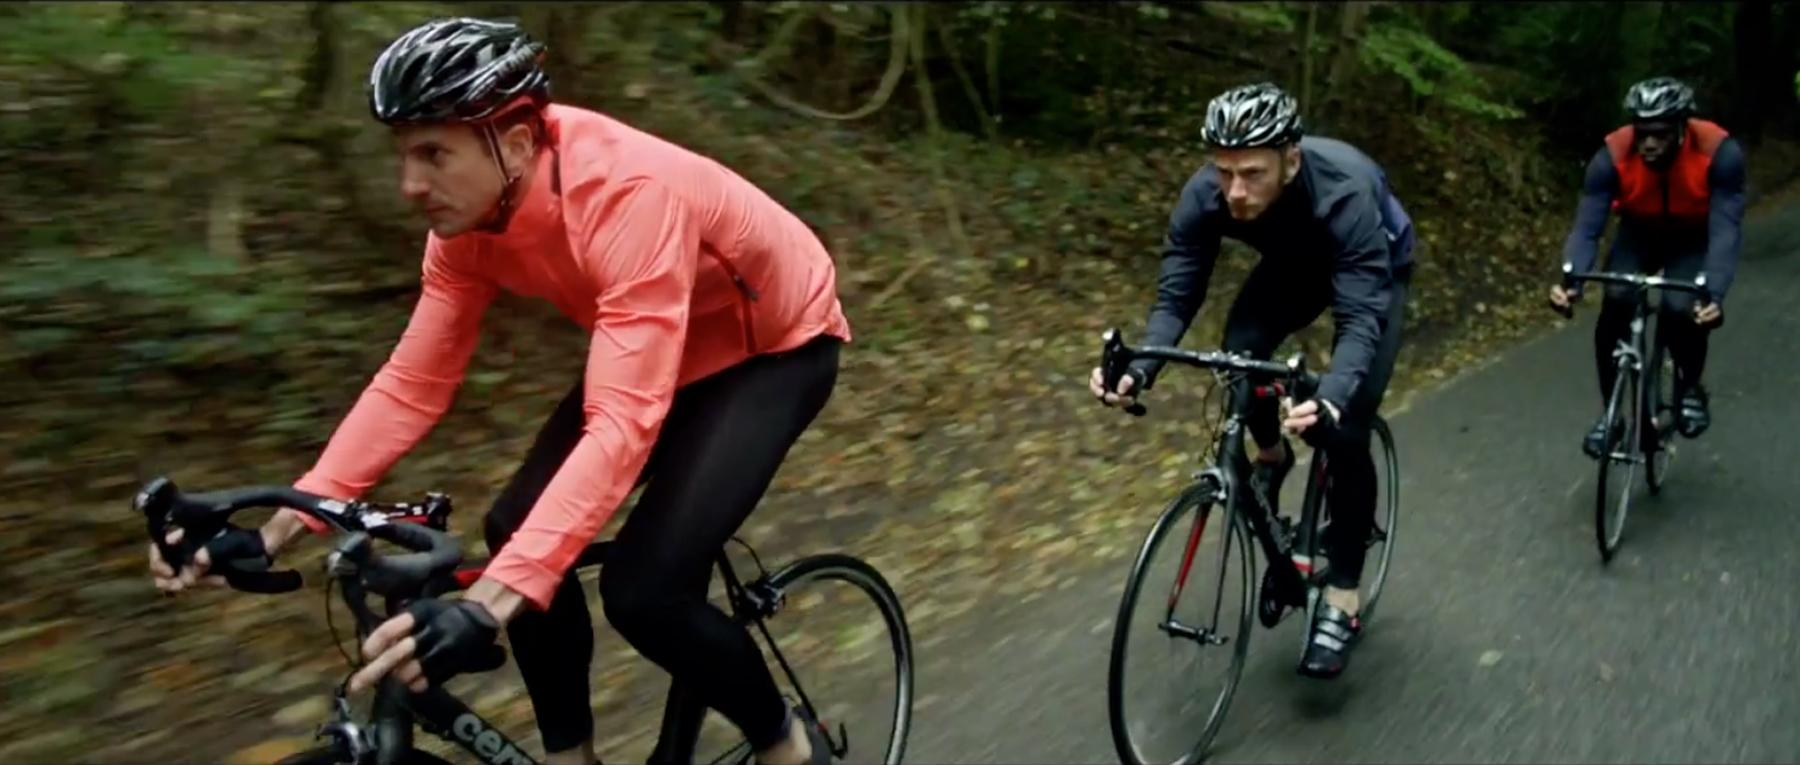 This beautifully filmed ad for Paul Smith cycle wear will make you want to go for a ride http://t.co/Z4uzdIOtNd http://t.co/2aC5RhOjB5